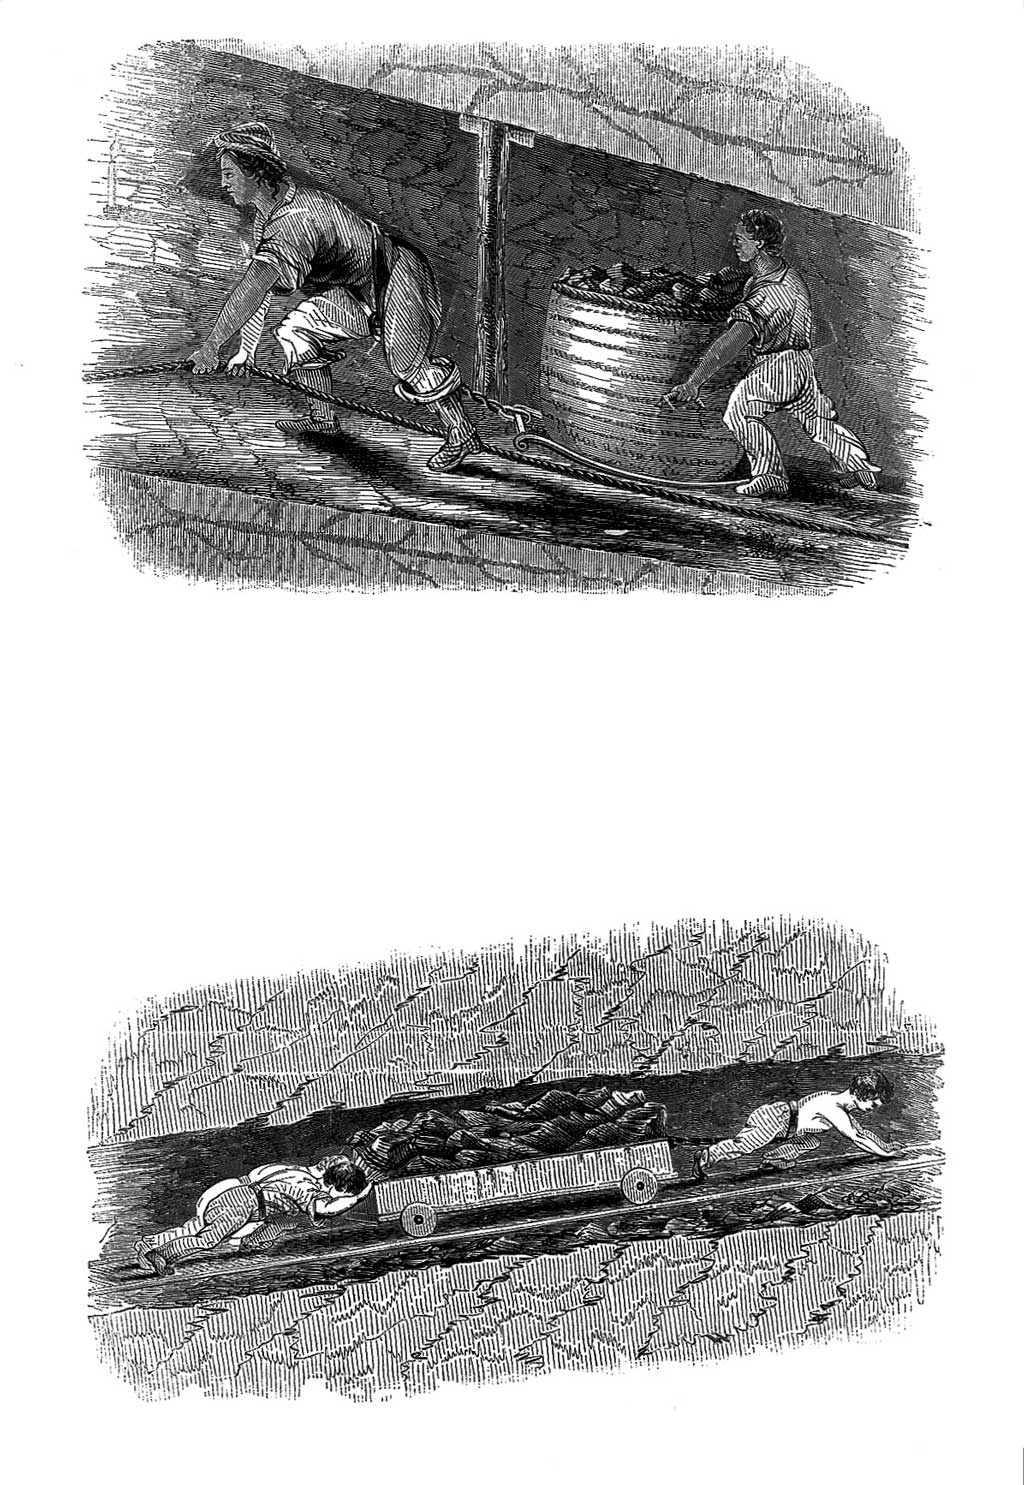 Illustrations of children working in mines, pushing coal wagons through narrow tunnels